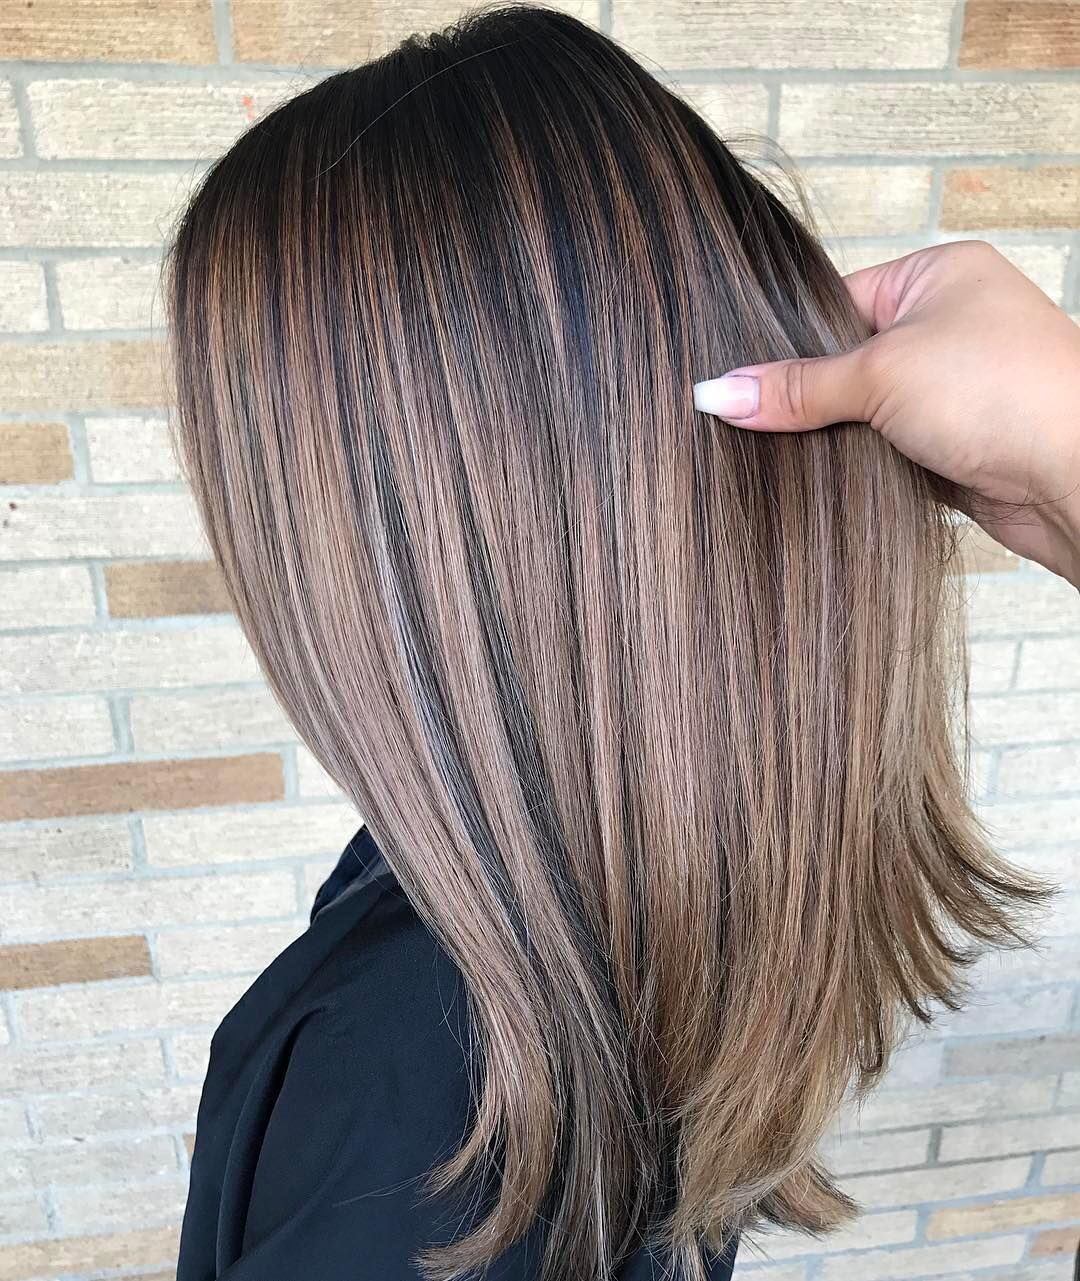 Trendy Hair Color Designs For Medium Length Hair Medium Hairstyle Ideas Hair Styles Medium Hair Color Ombre Hair Color